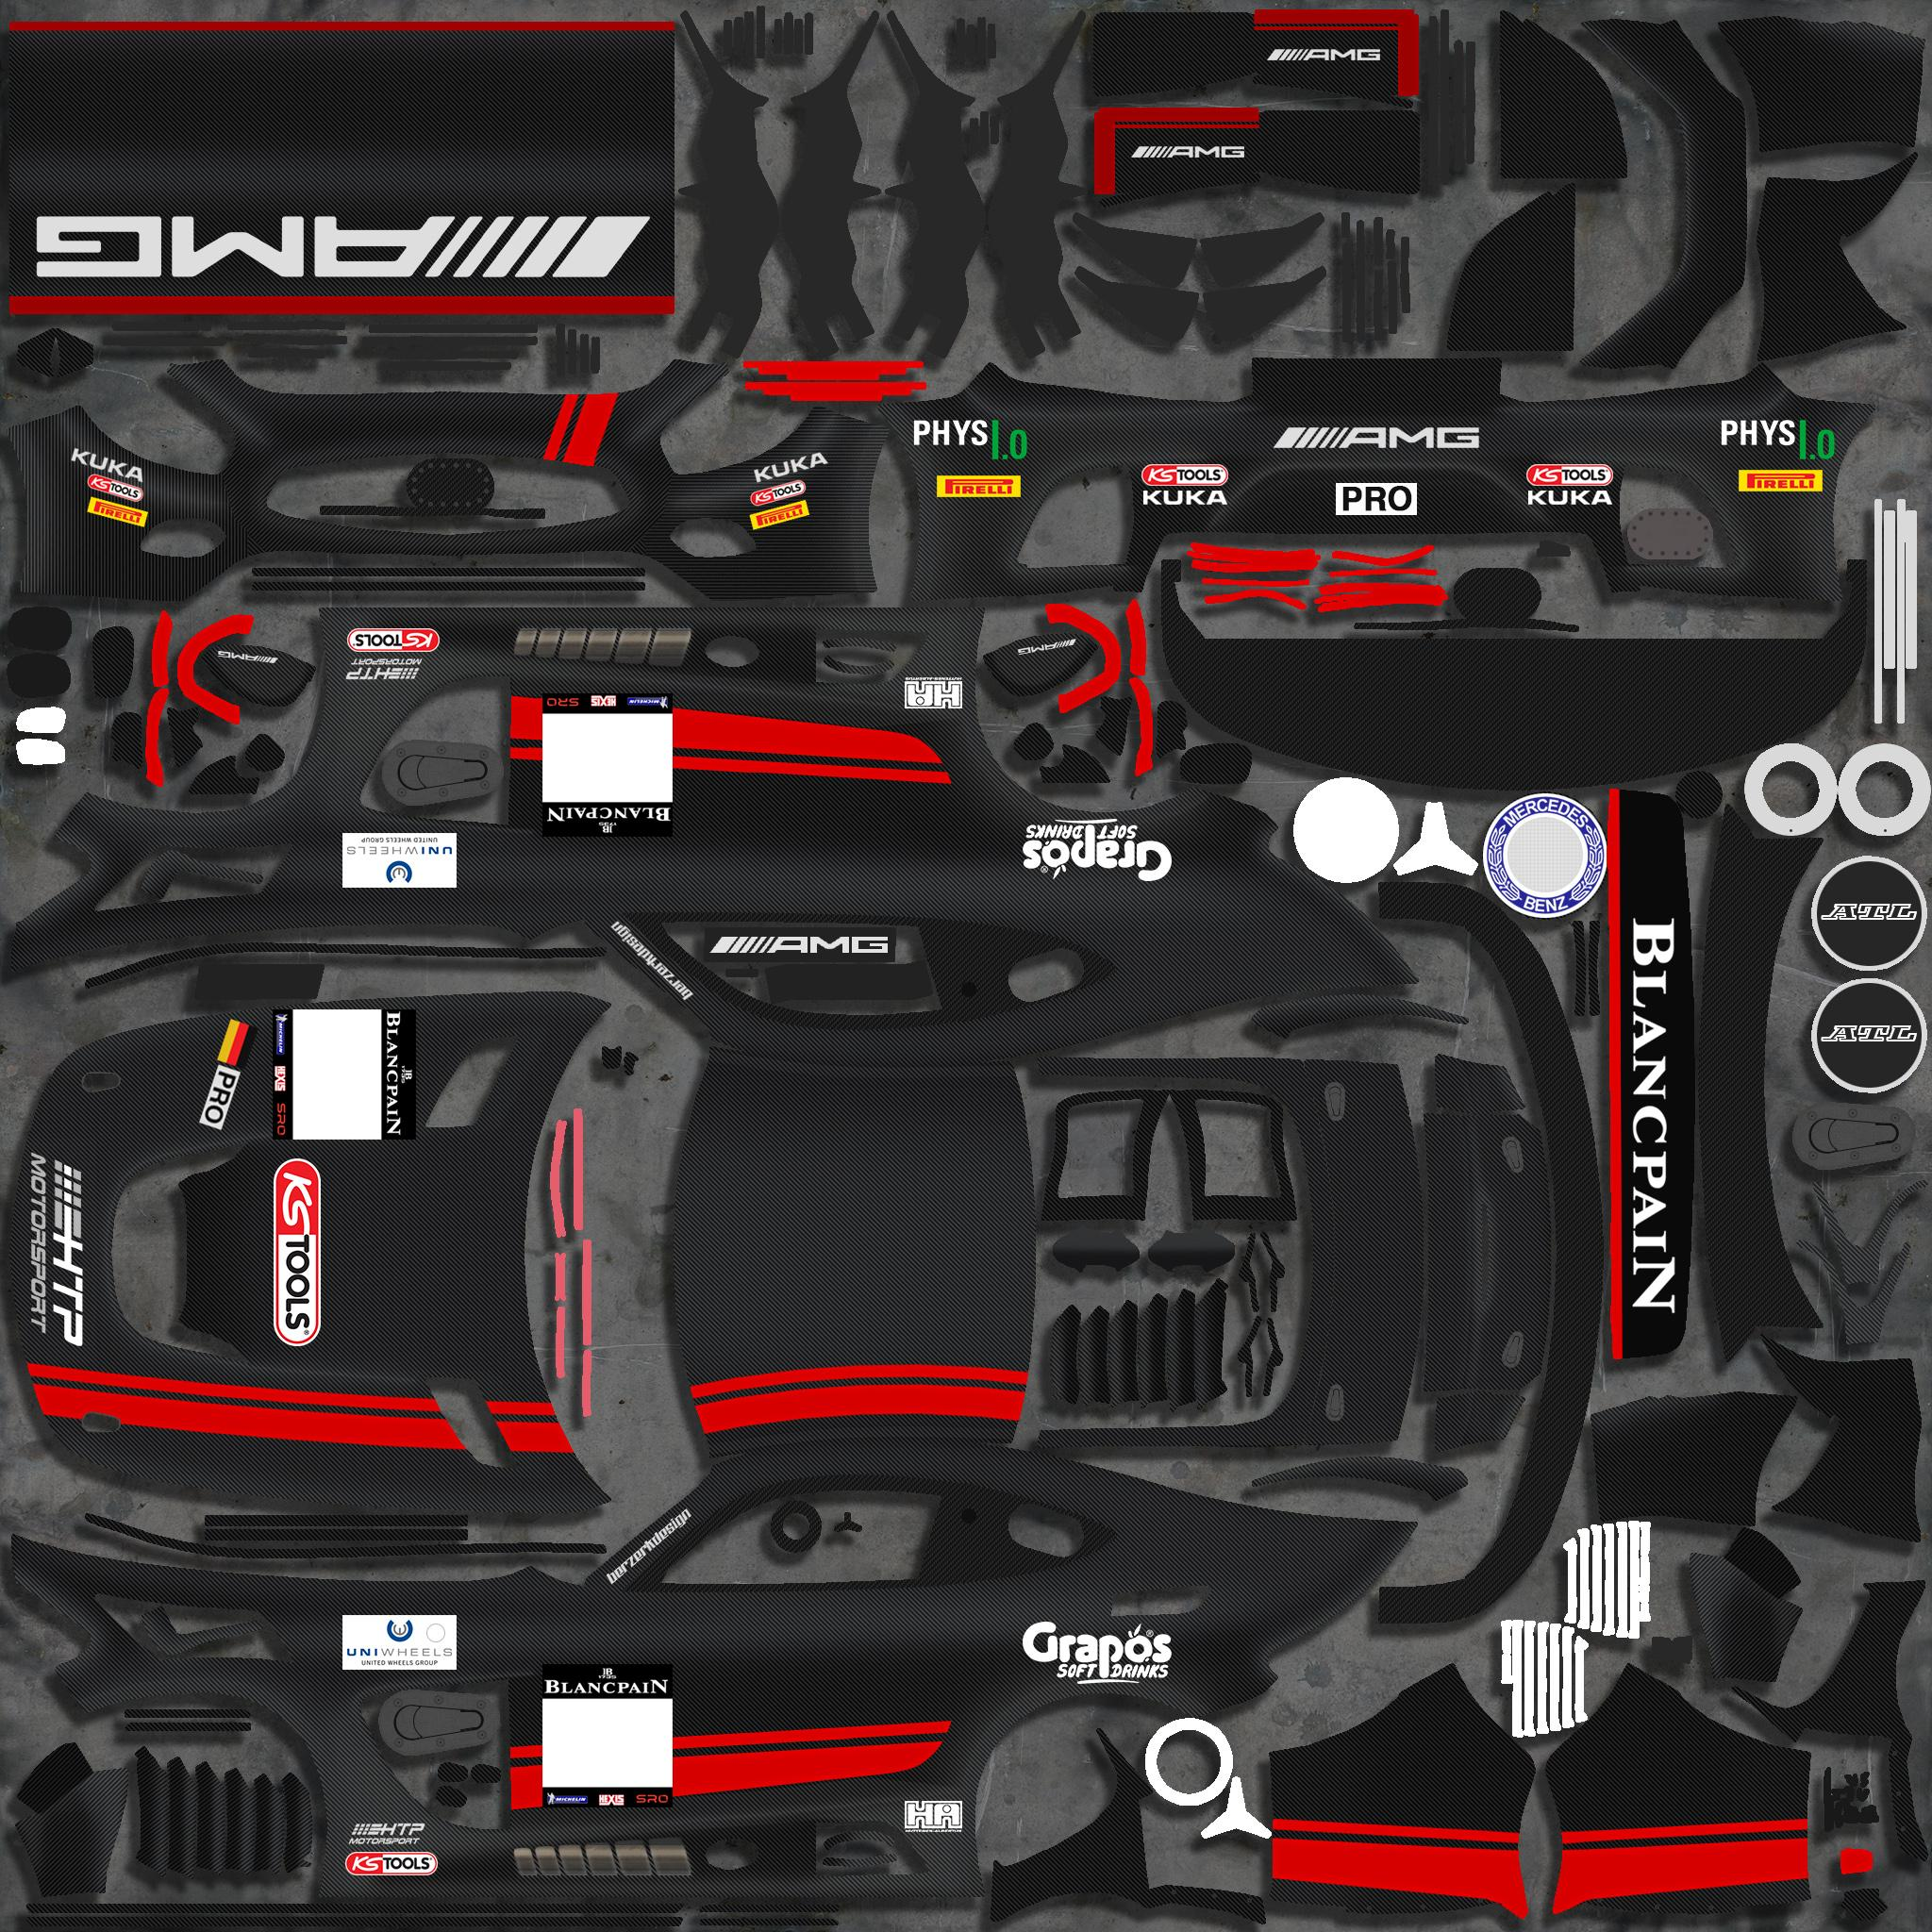 Preview of #84 HTP Motorsport (2016 Blancpain GT) by Justin S Davis